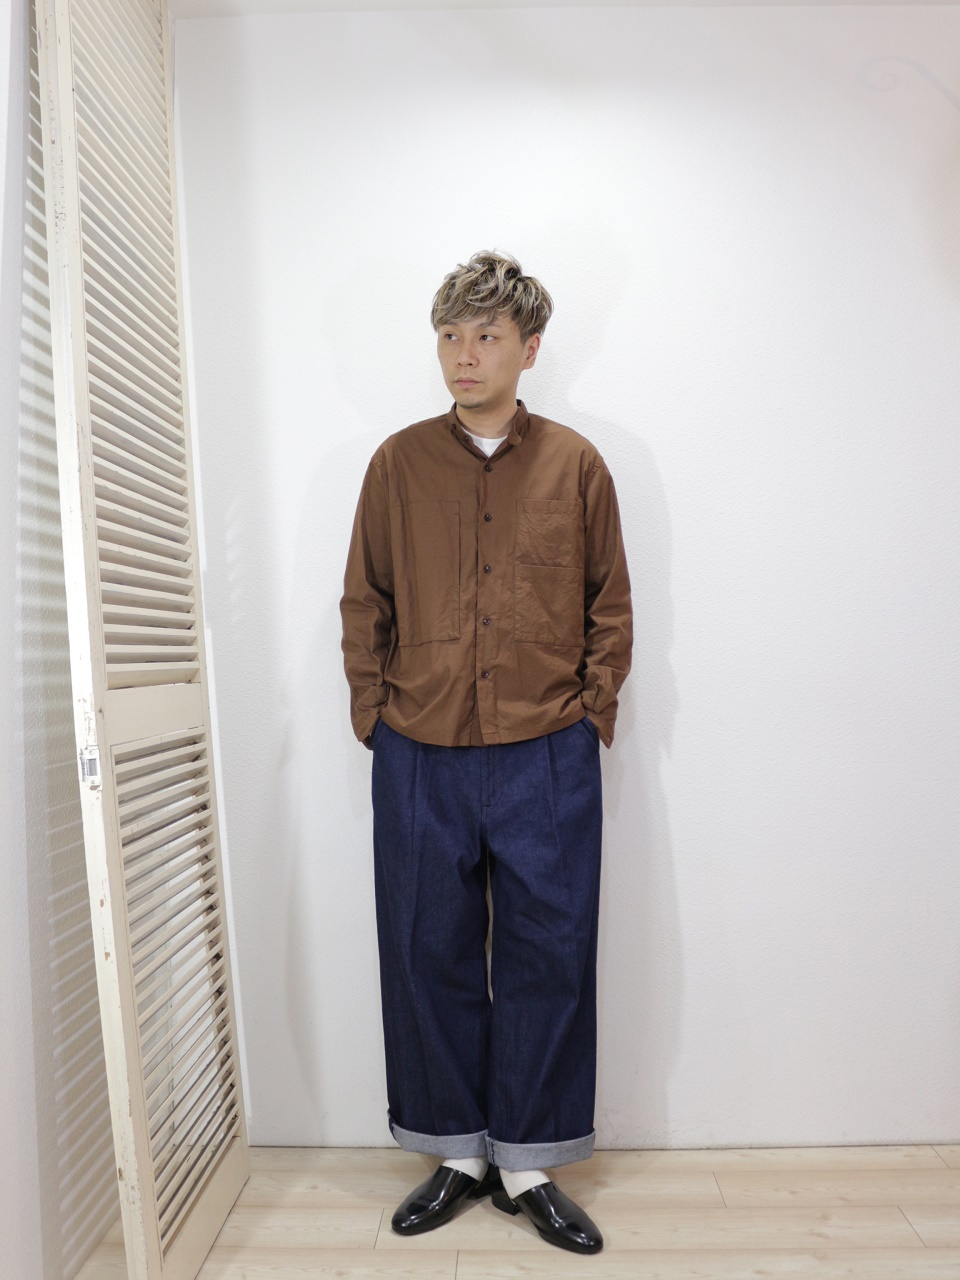 outer/MANUAL ALPHABET-GACHAPOKE BANDCOLLAR JACKET(SIZE 1)tee/MANUAL ALPHABET-MILITARY FRAISE CREW NECK L/S TEE(SIZE 1)pants/H.UNIT-Denim crown size tuck trousers(SIZE 1)socks/decka-PLAIN MERCERIZATION SOCKS(SIZE MEN)を使ったコーディネート